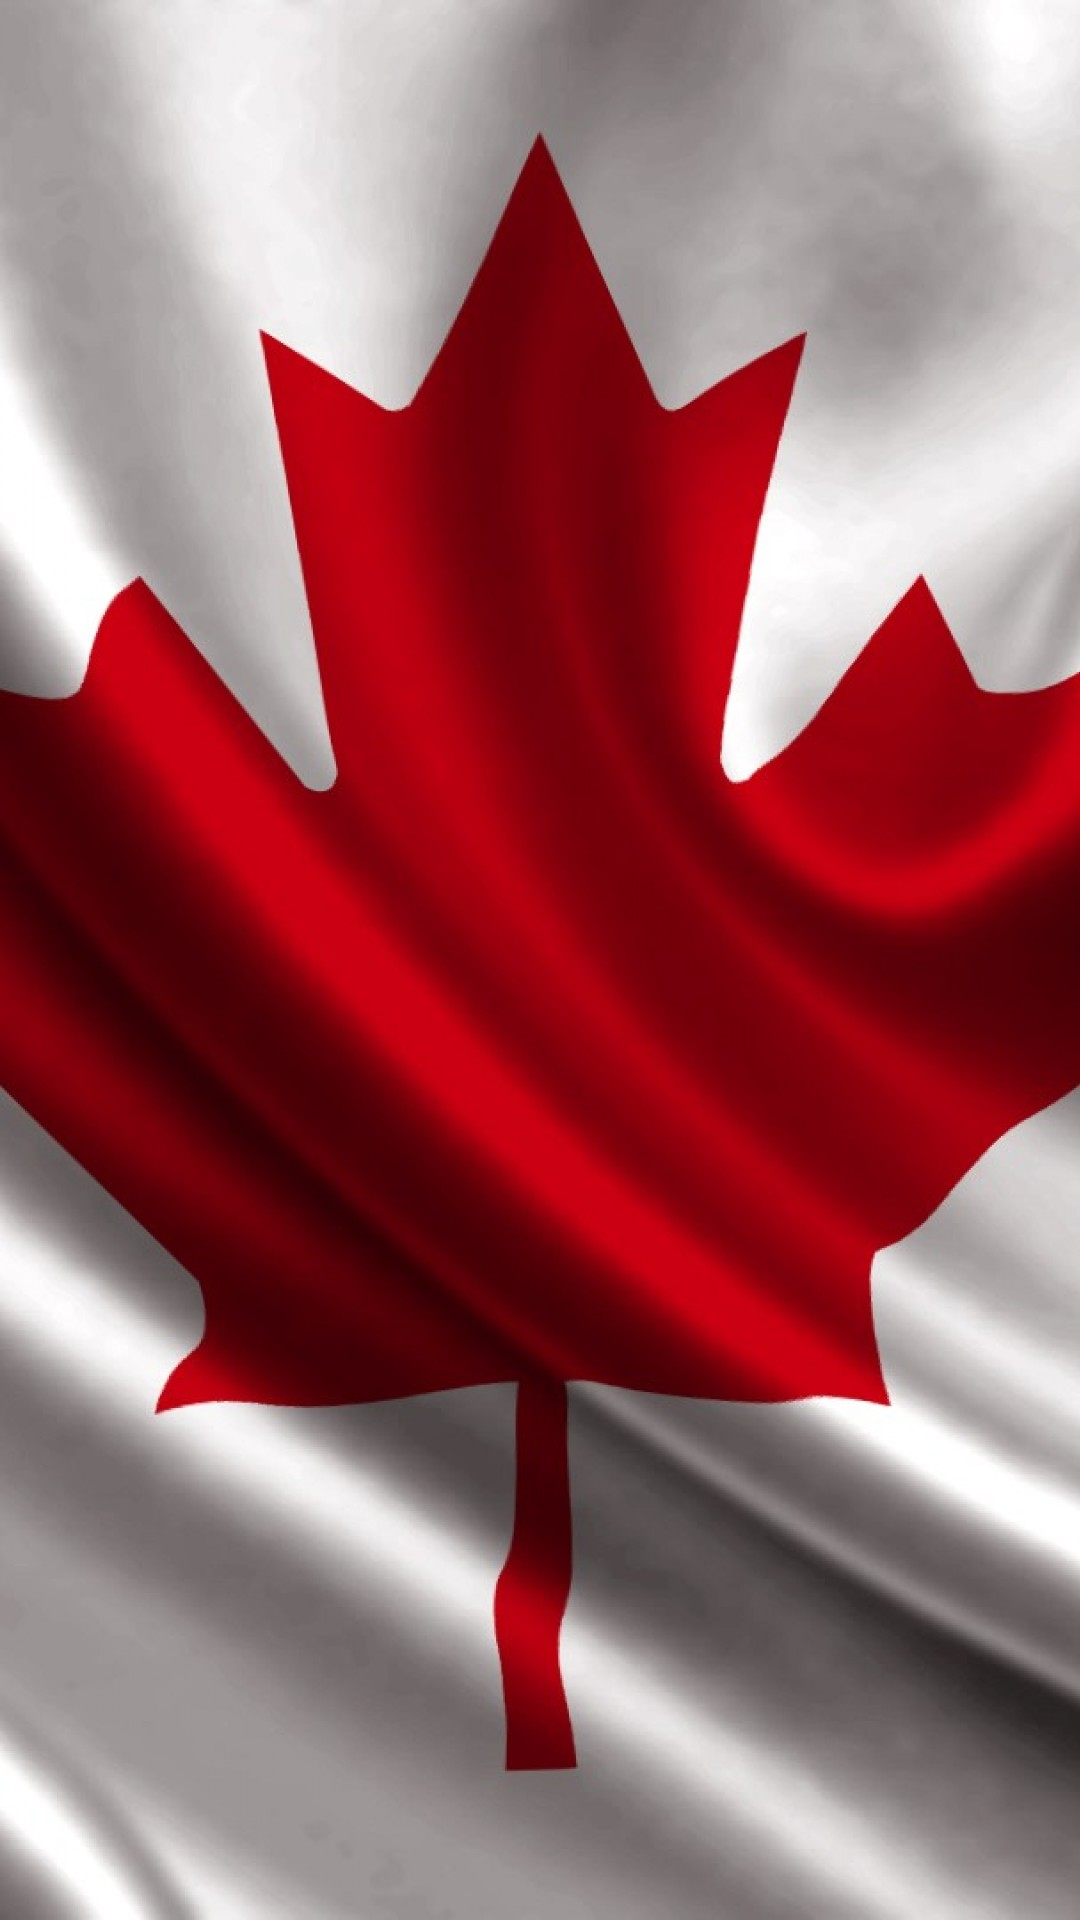 Canada flag wallpapers wallpapertag - Canada flag wallpaper hd for iphone ...